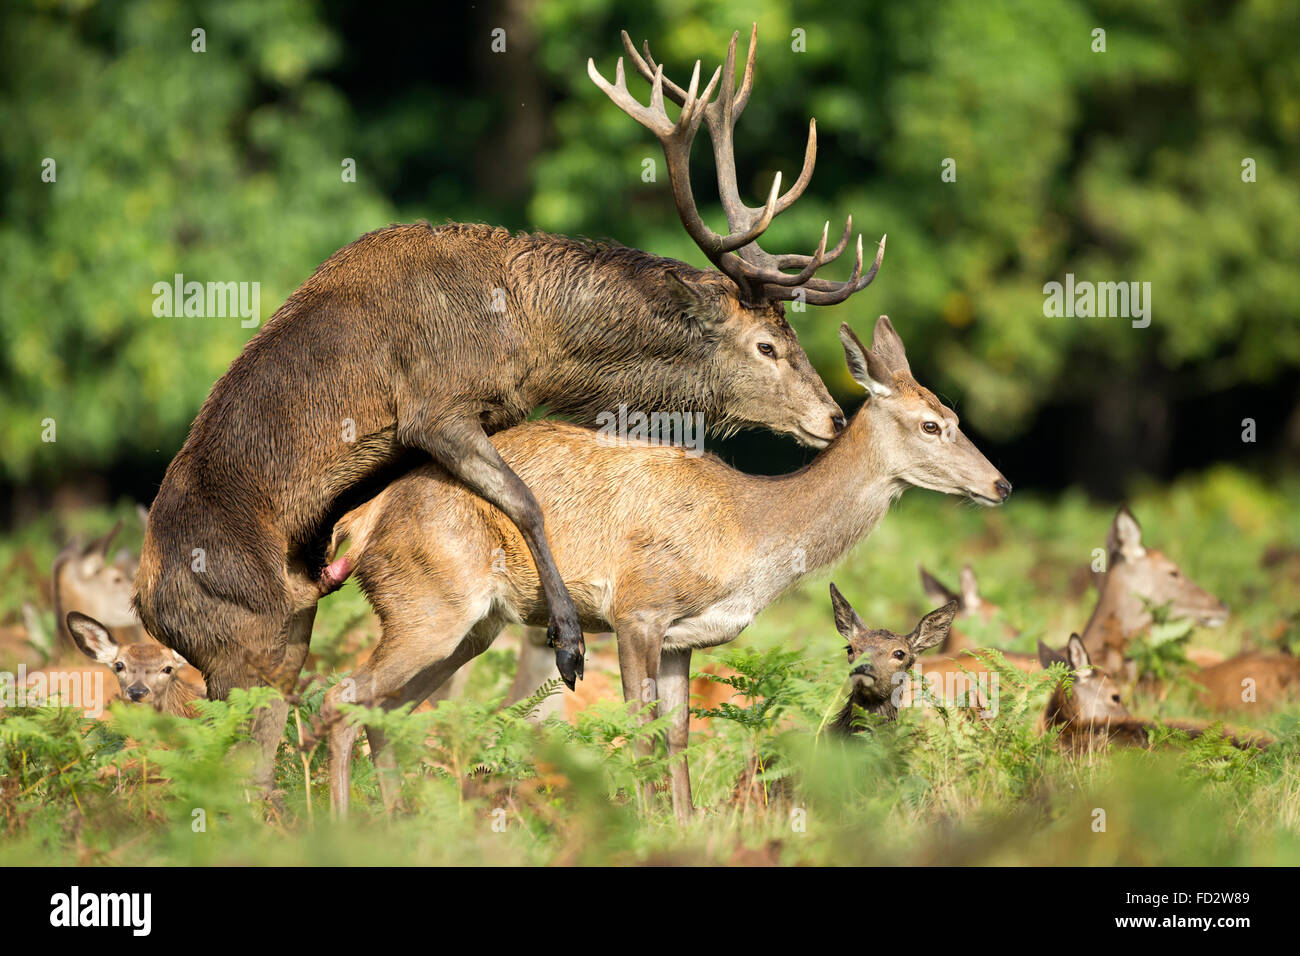 Red deer (Cervus elaphus) mating during the rutting season - Stock Image